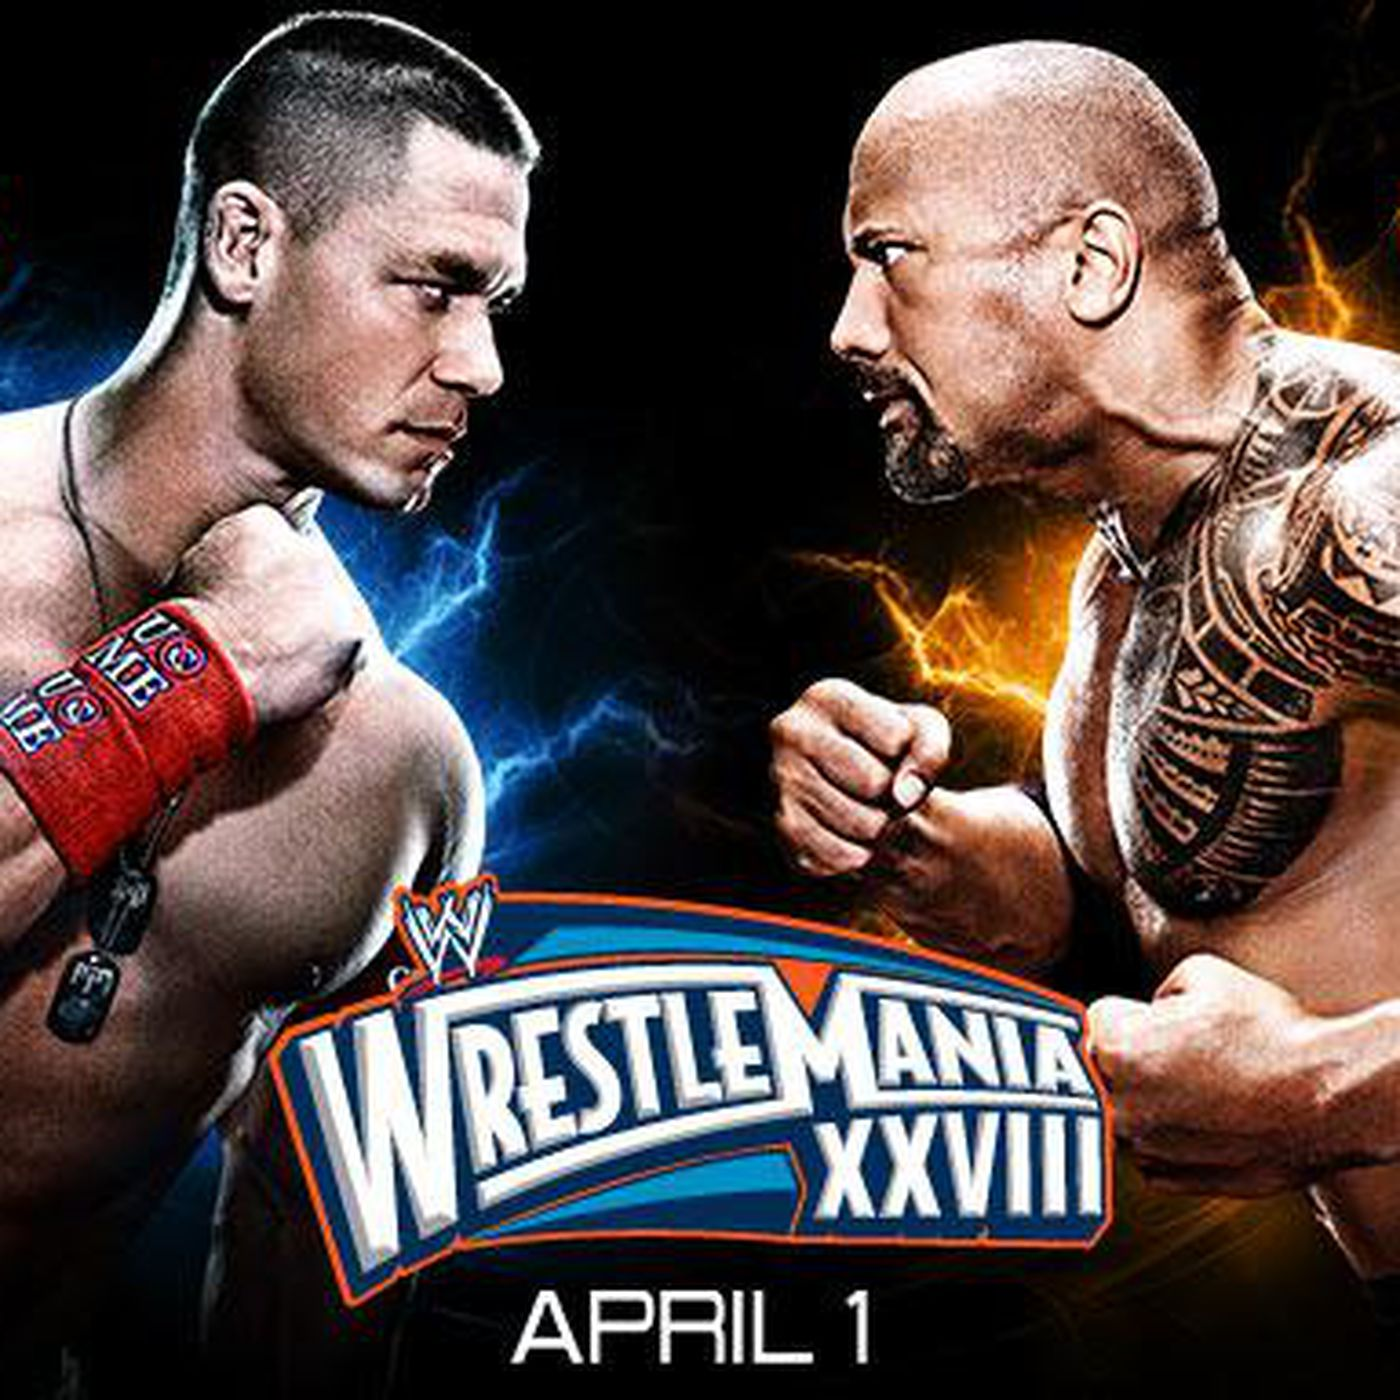 Wrestlemania 28 results and live matches coverage for John Cena vs The Rock  in Miami - MMAmania.com